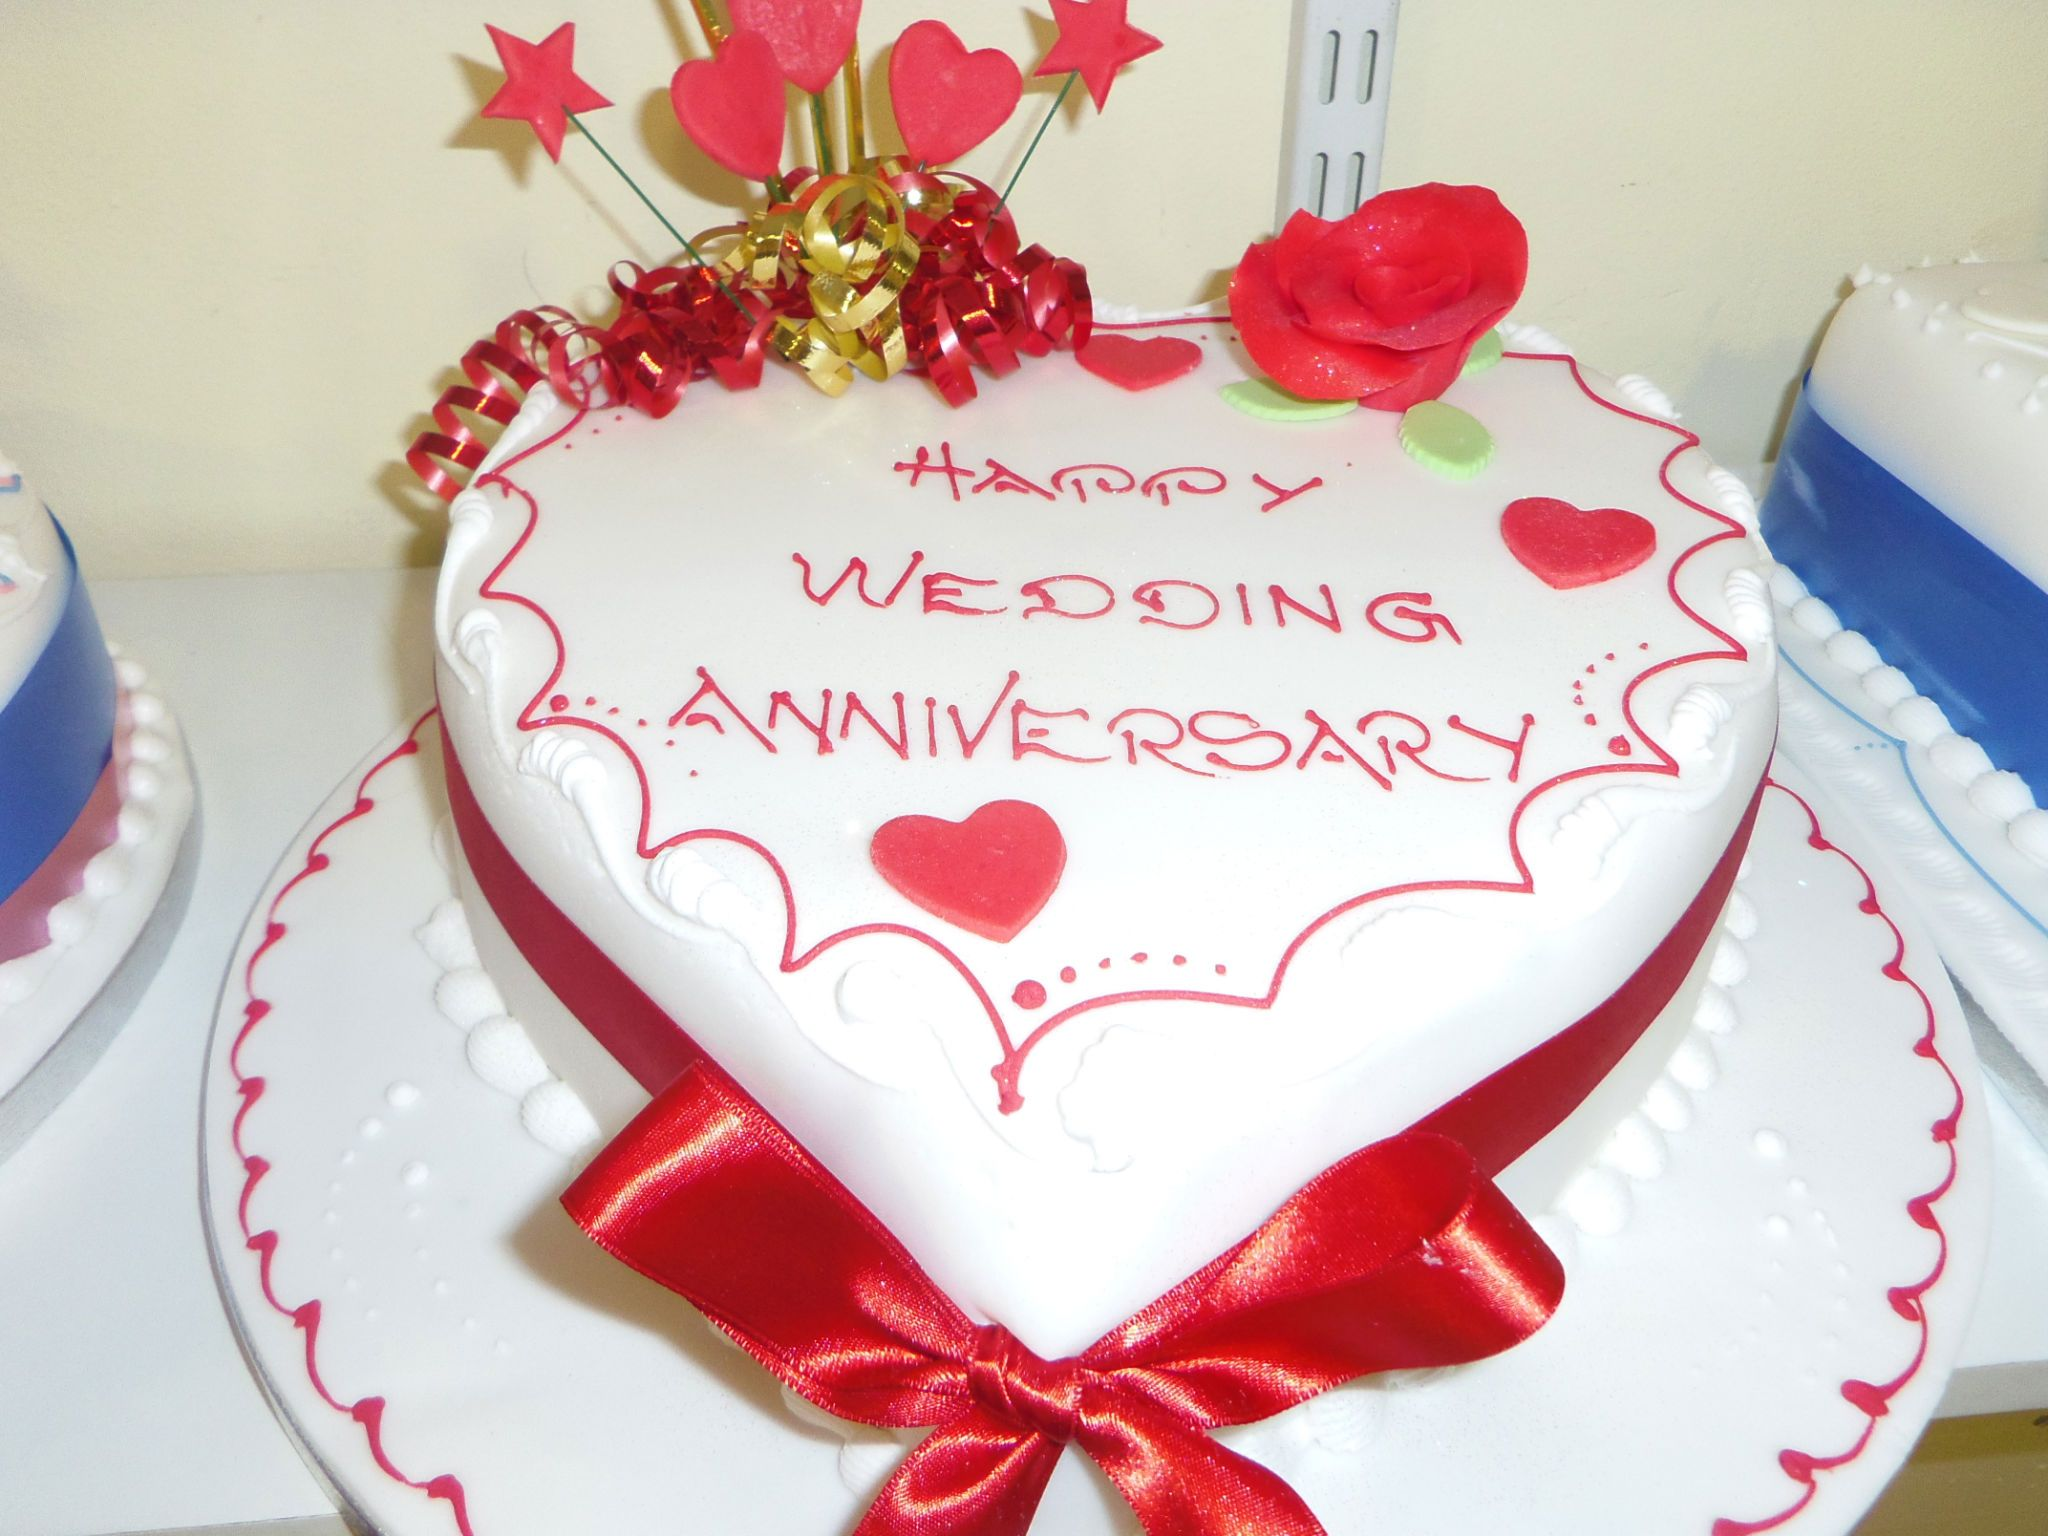 Cakes Images Wedding Cake Hd Wallpaper And Background Photos - Cake happy wedding anniversary cakes